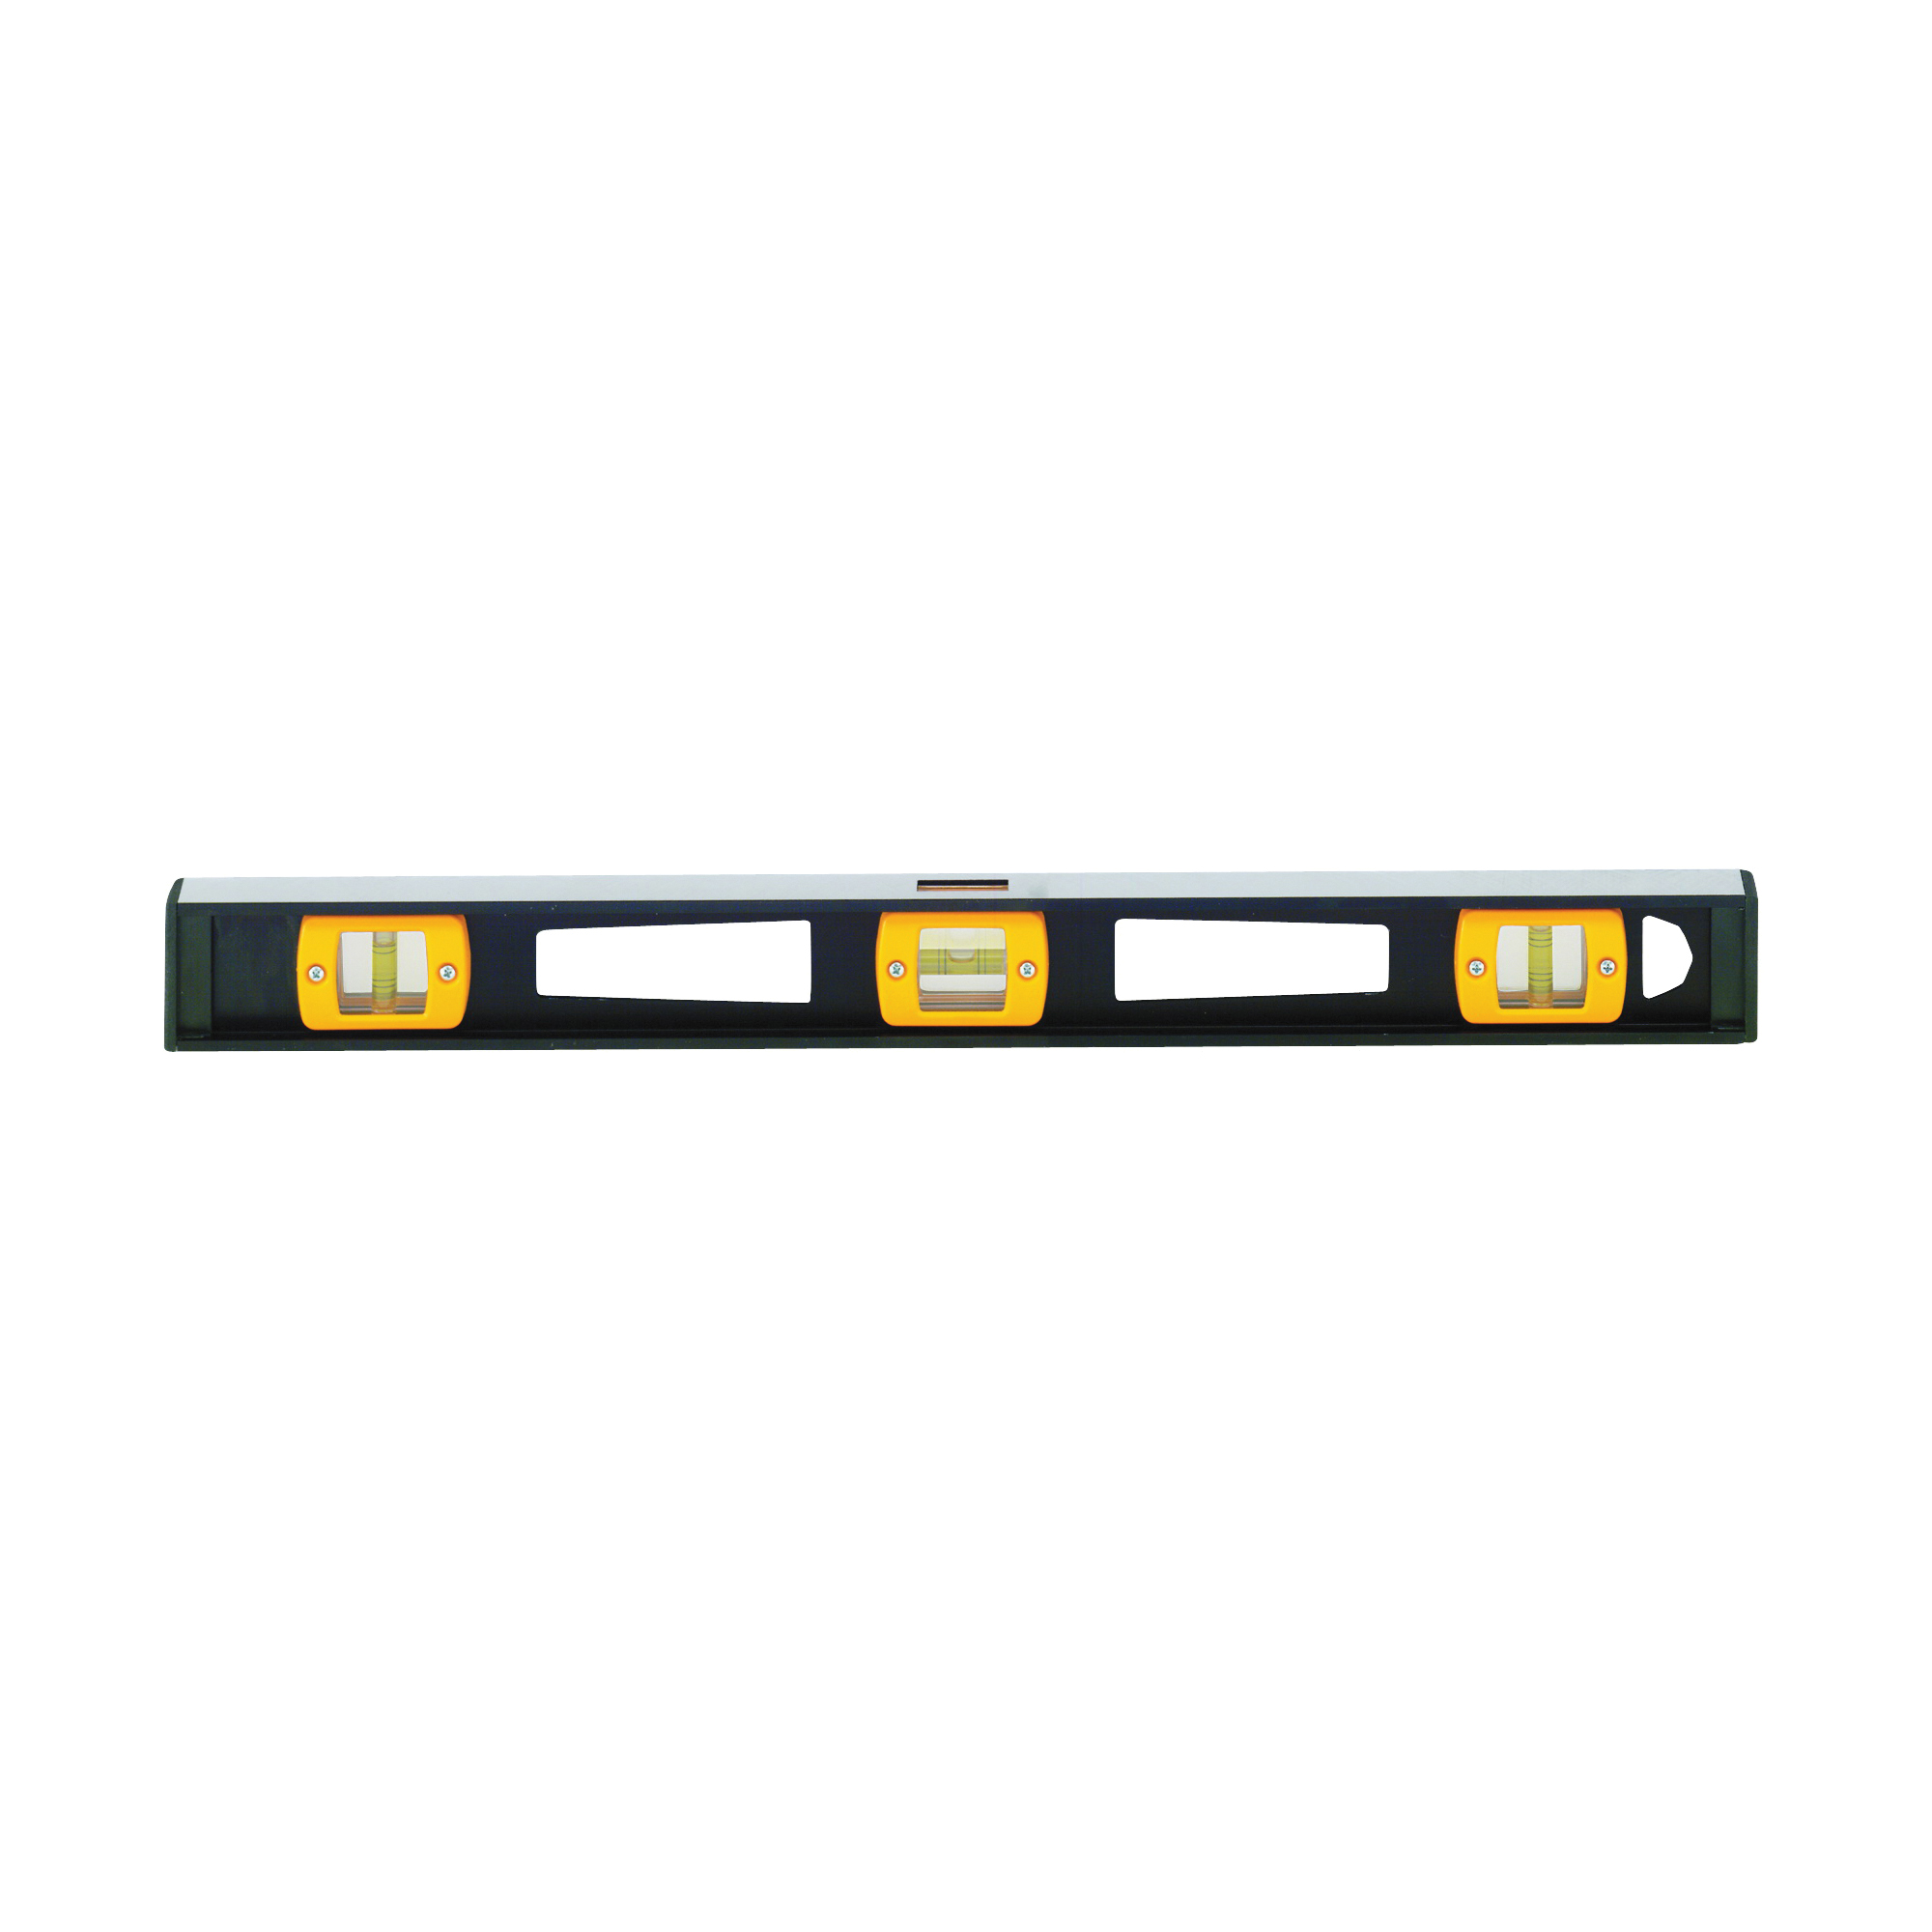 Picture of Johnson 3748 I-Beam Level, 48 in L, 3 -Vial, 2 -Hang Hole, Non-Magnetic, Aluminum, Black